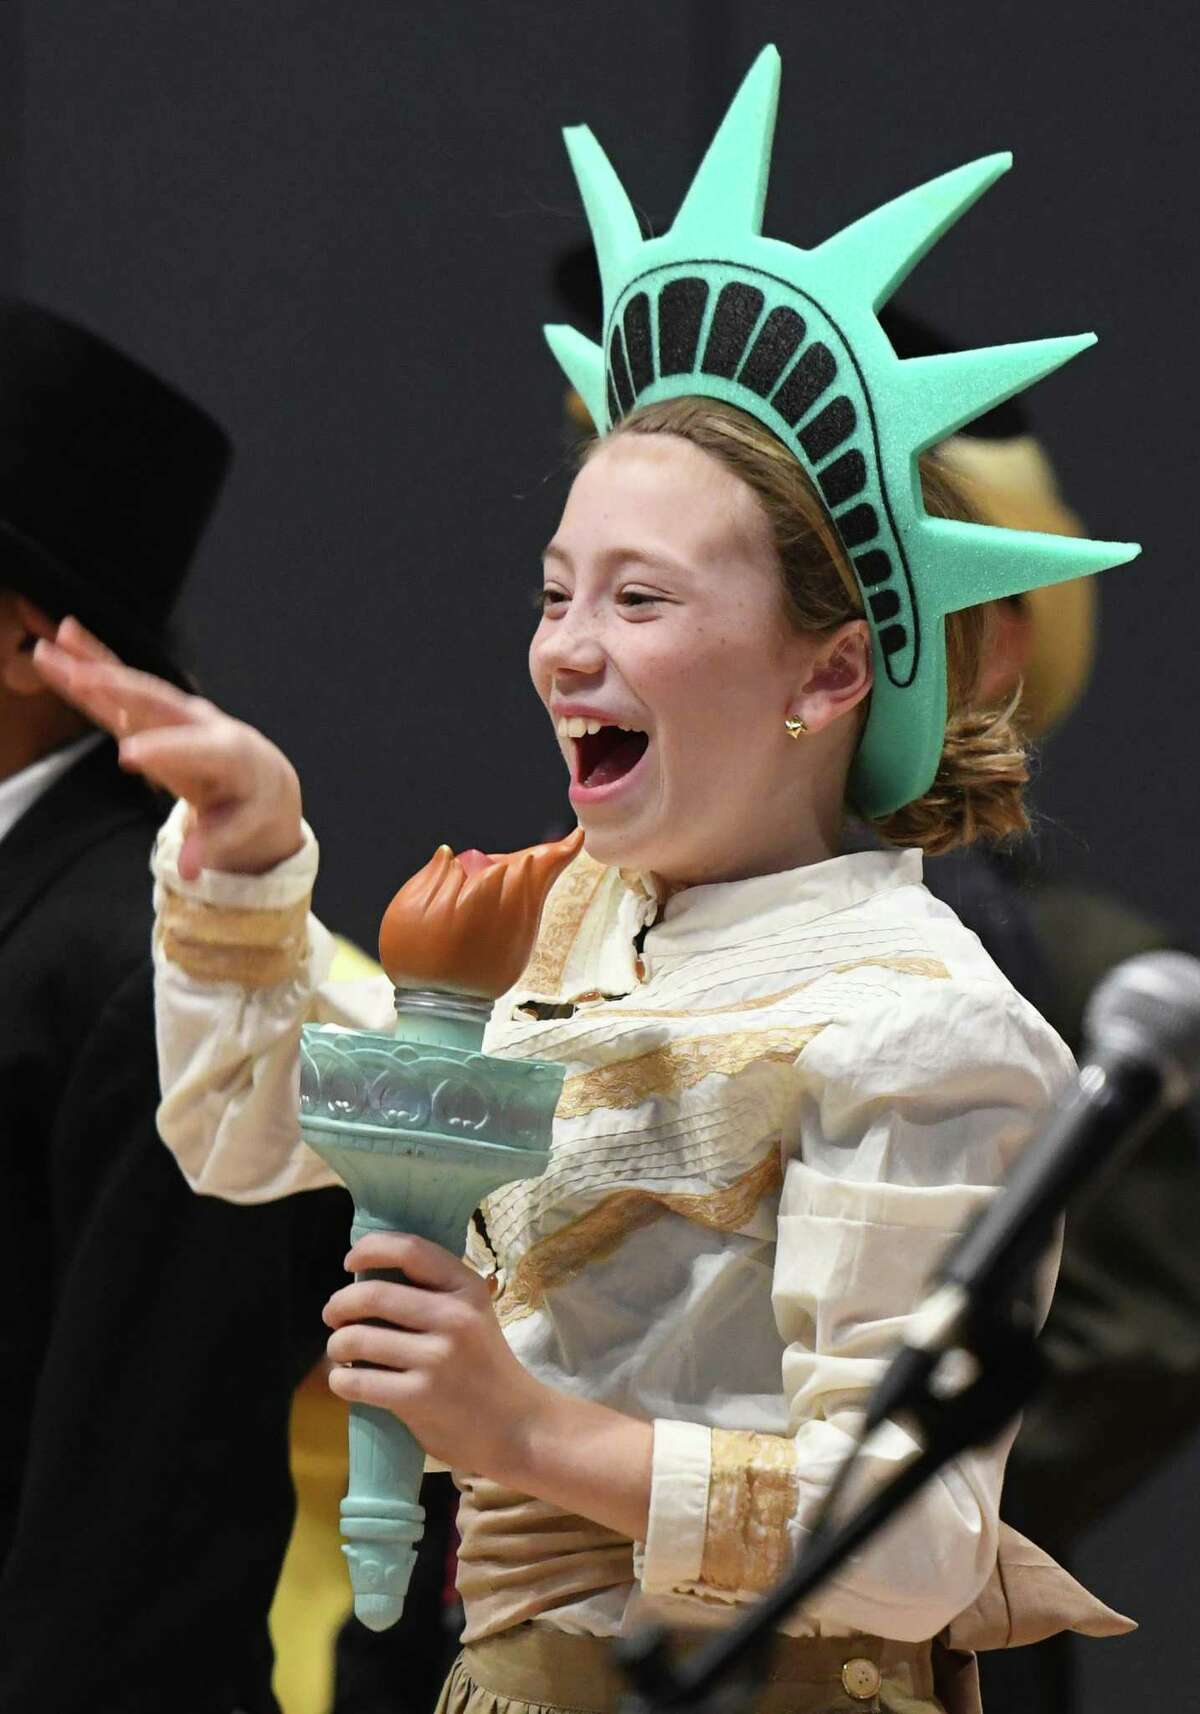 """Sailor Wood-Smith plays the role of Eulalie Mackecknie Shinn in the performance of """"The Music Man Kids"""" at New Lebanon School in the Byram section of Greenwich, Conn. Tuesday, Nov. 26, 2019. The story follows salesman Harold Hill as he cons the people of River City, Iowa into buying instruments for a band he vows to organize, but has his heart stolen by the town librarian before he can skip town with the money. Dozens of students had a role in the musical, which was performed in front of the student body Tuesday afternoon and parents and friends Tuesday evening. Proceeds benefit """"The Roots of Music,"""" a New Orleans-based organization that empowers the youth of their city through music education, academic support and mentorship."""